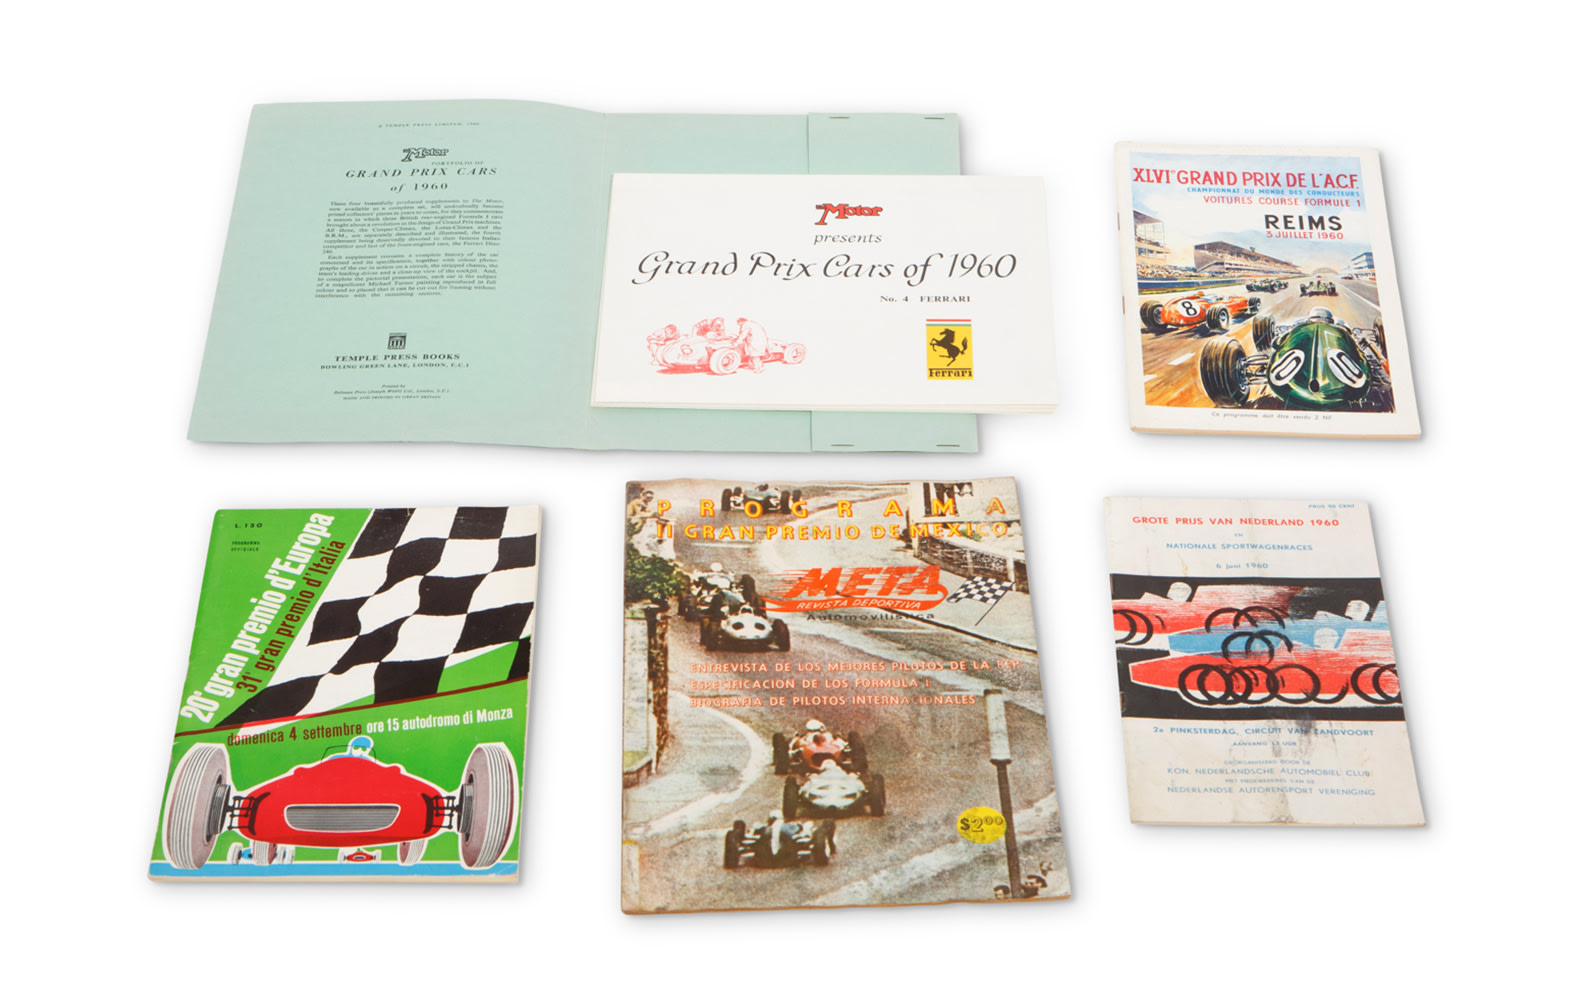 Assorted 1960 Race Programs, Including Monza, Zandvoort, Reims, and Mexico Grand Prix